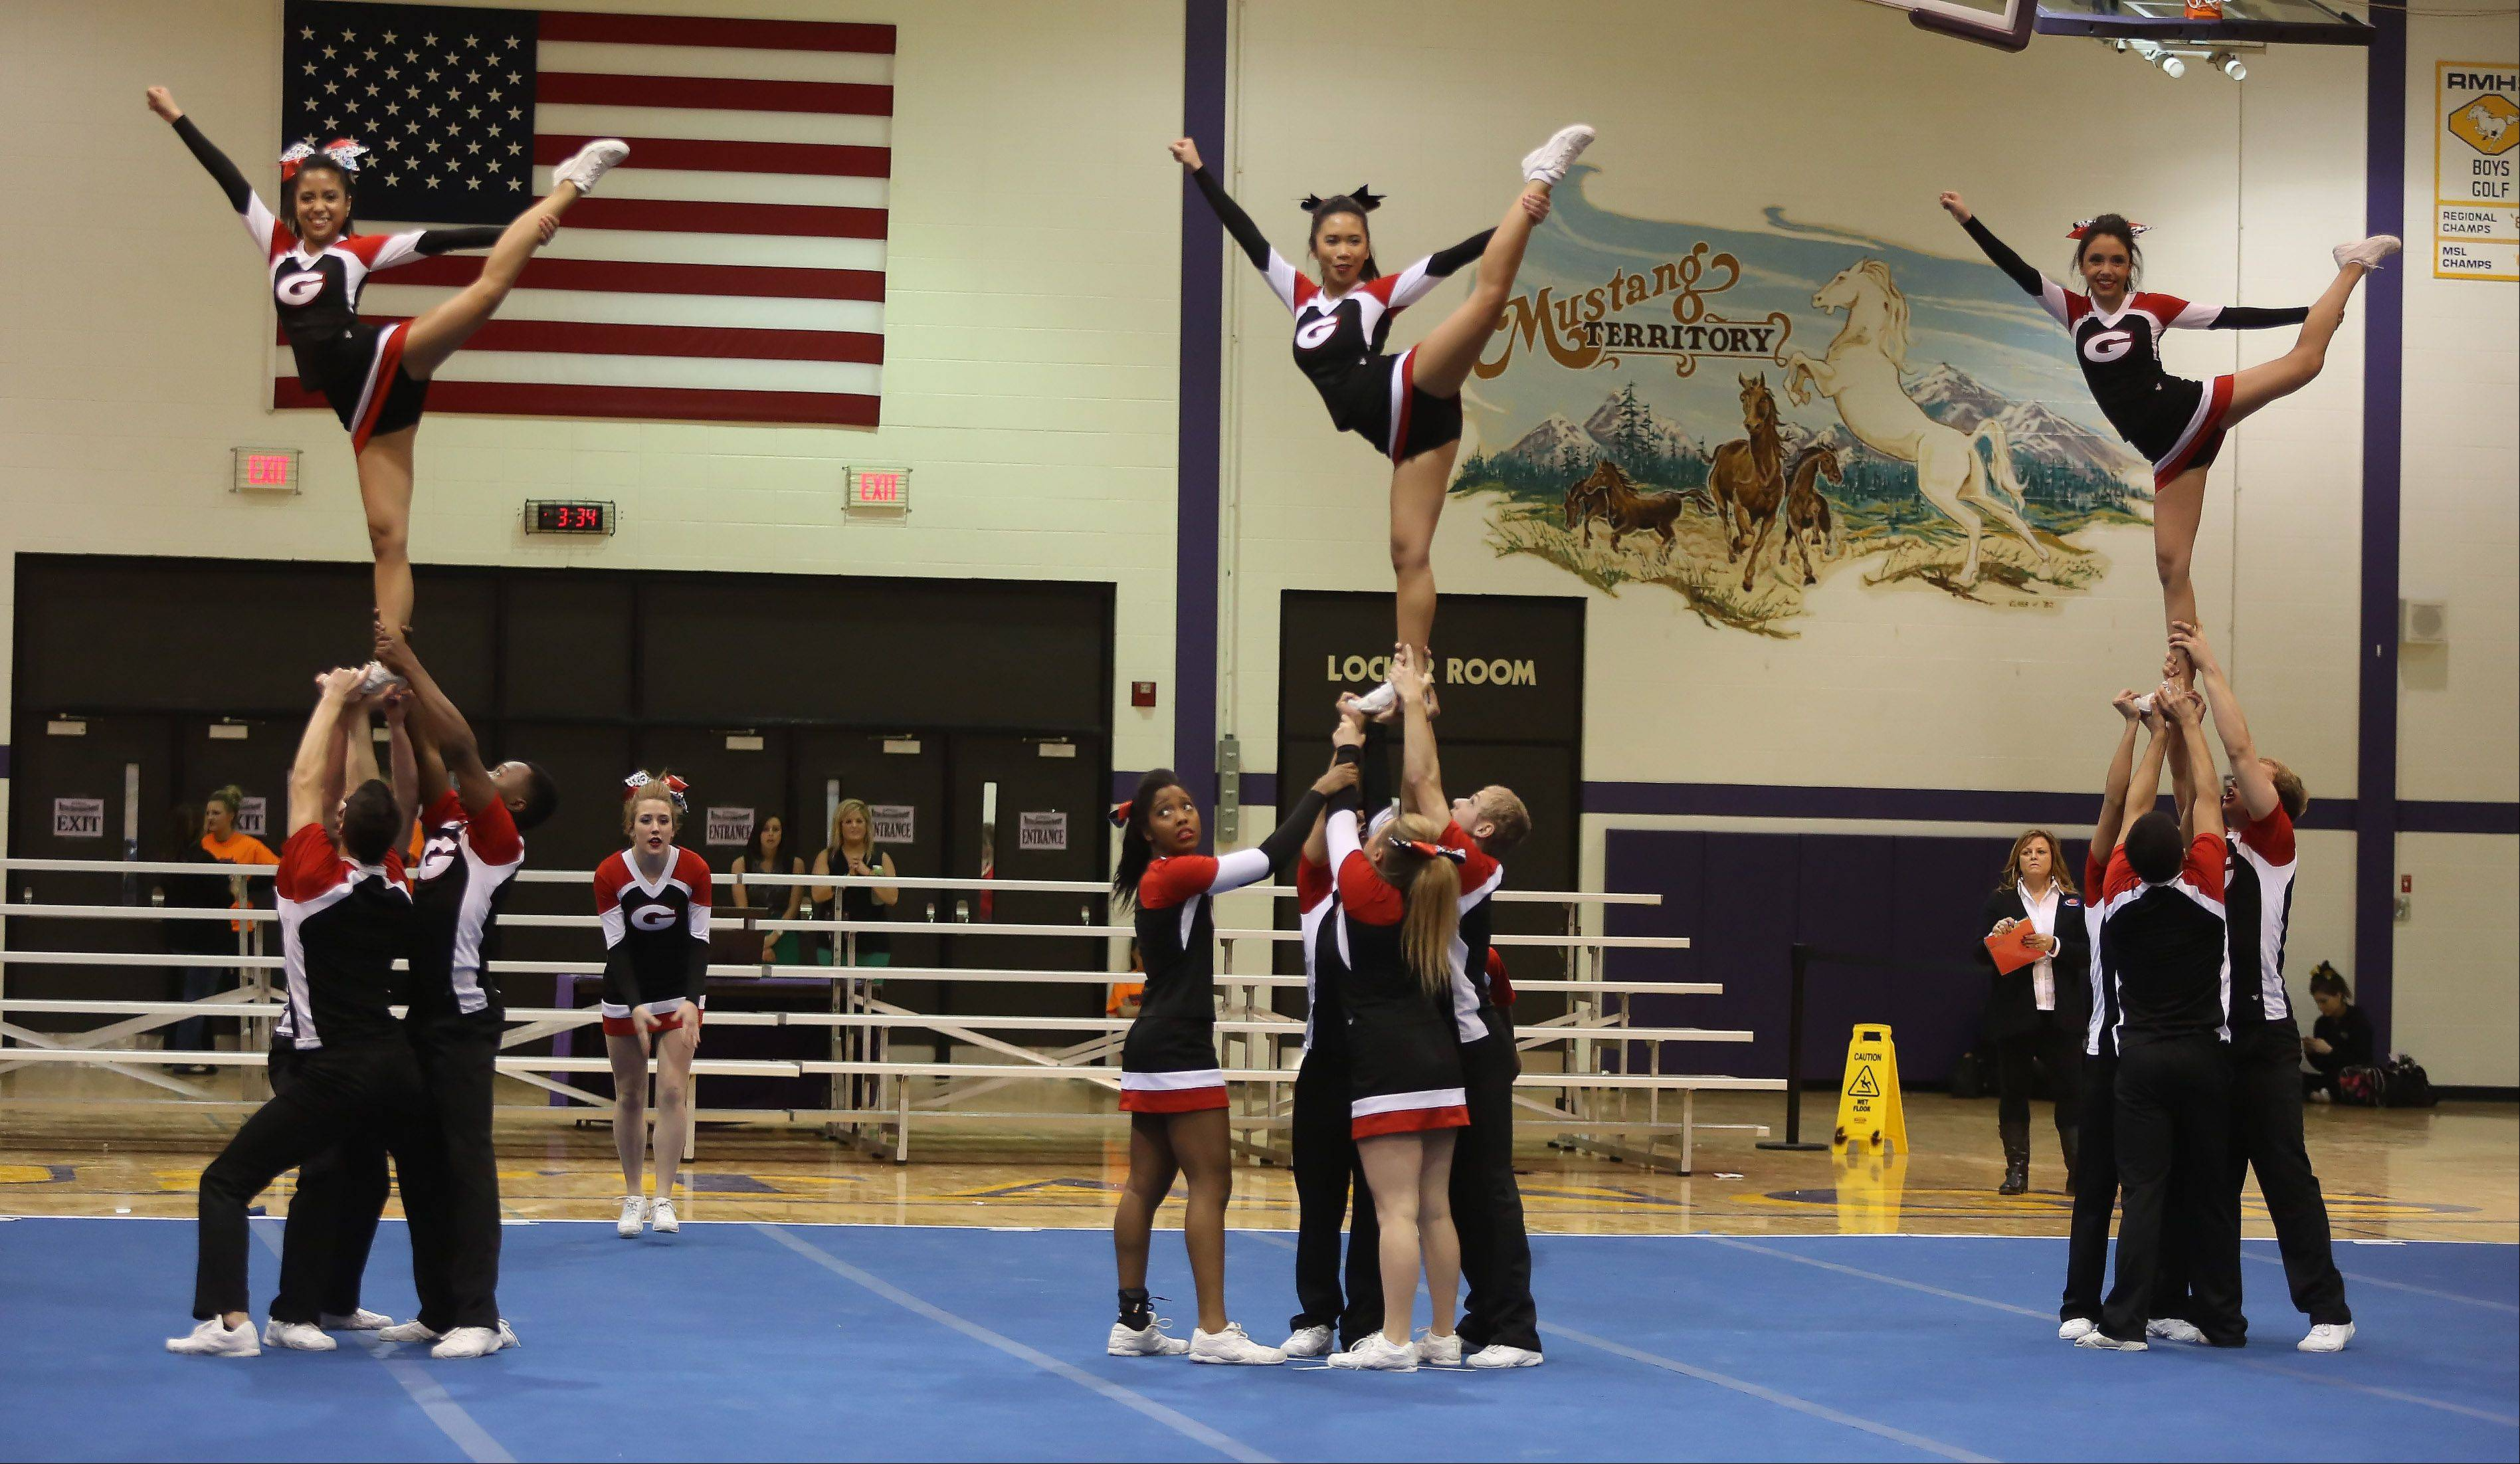 Glenbard East High School competes in the Coed Team category Saturday during the IHSA Cheerleading Sectional at Rolling Meadows High School.